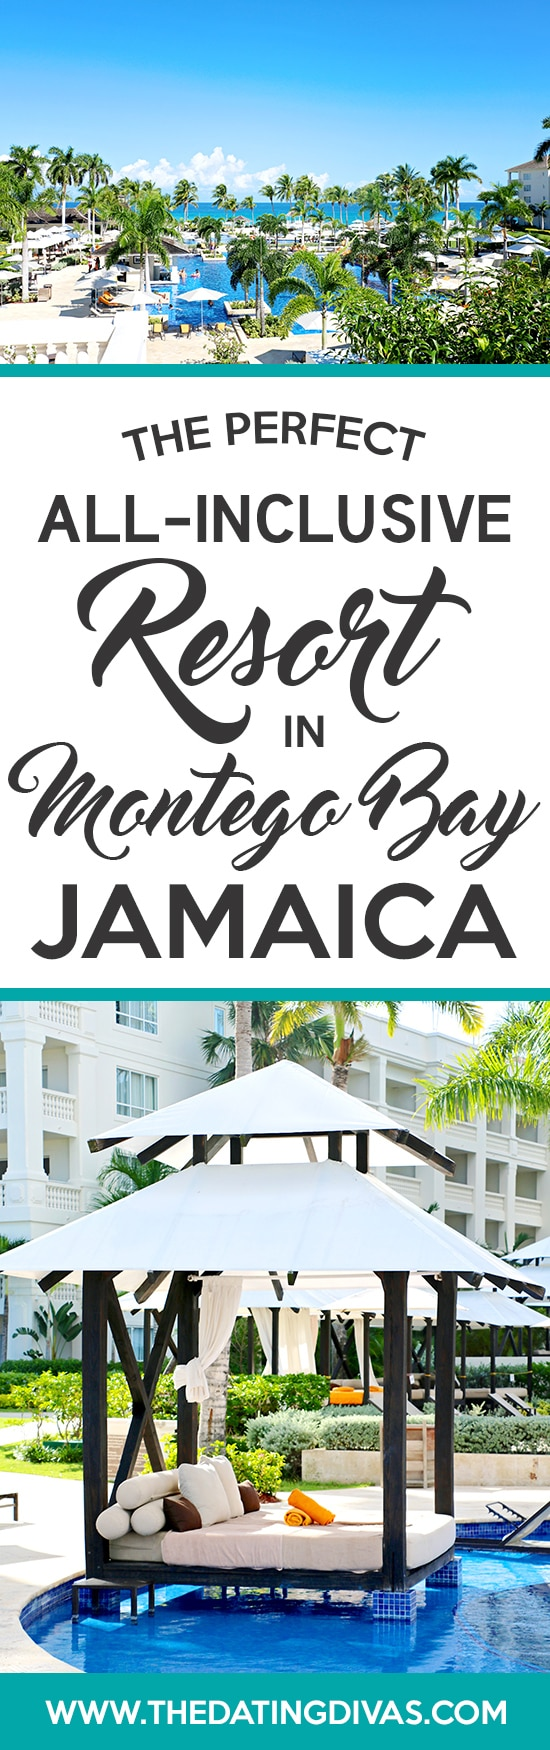 The Perfect All-Inclusive Resort in Montego Bay Jamaica